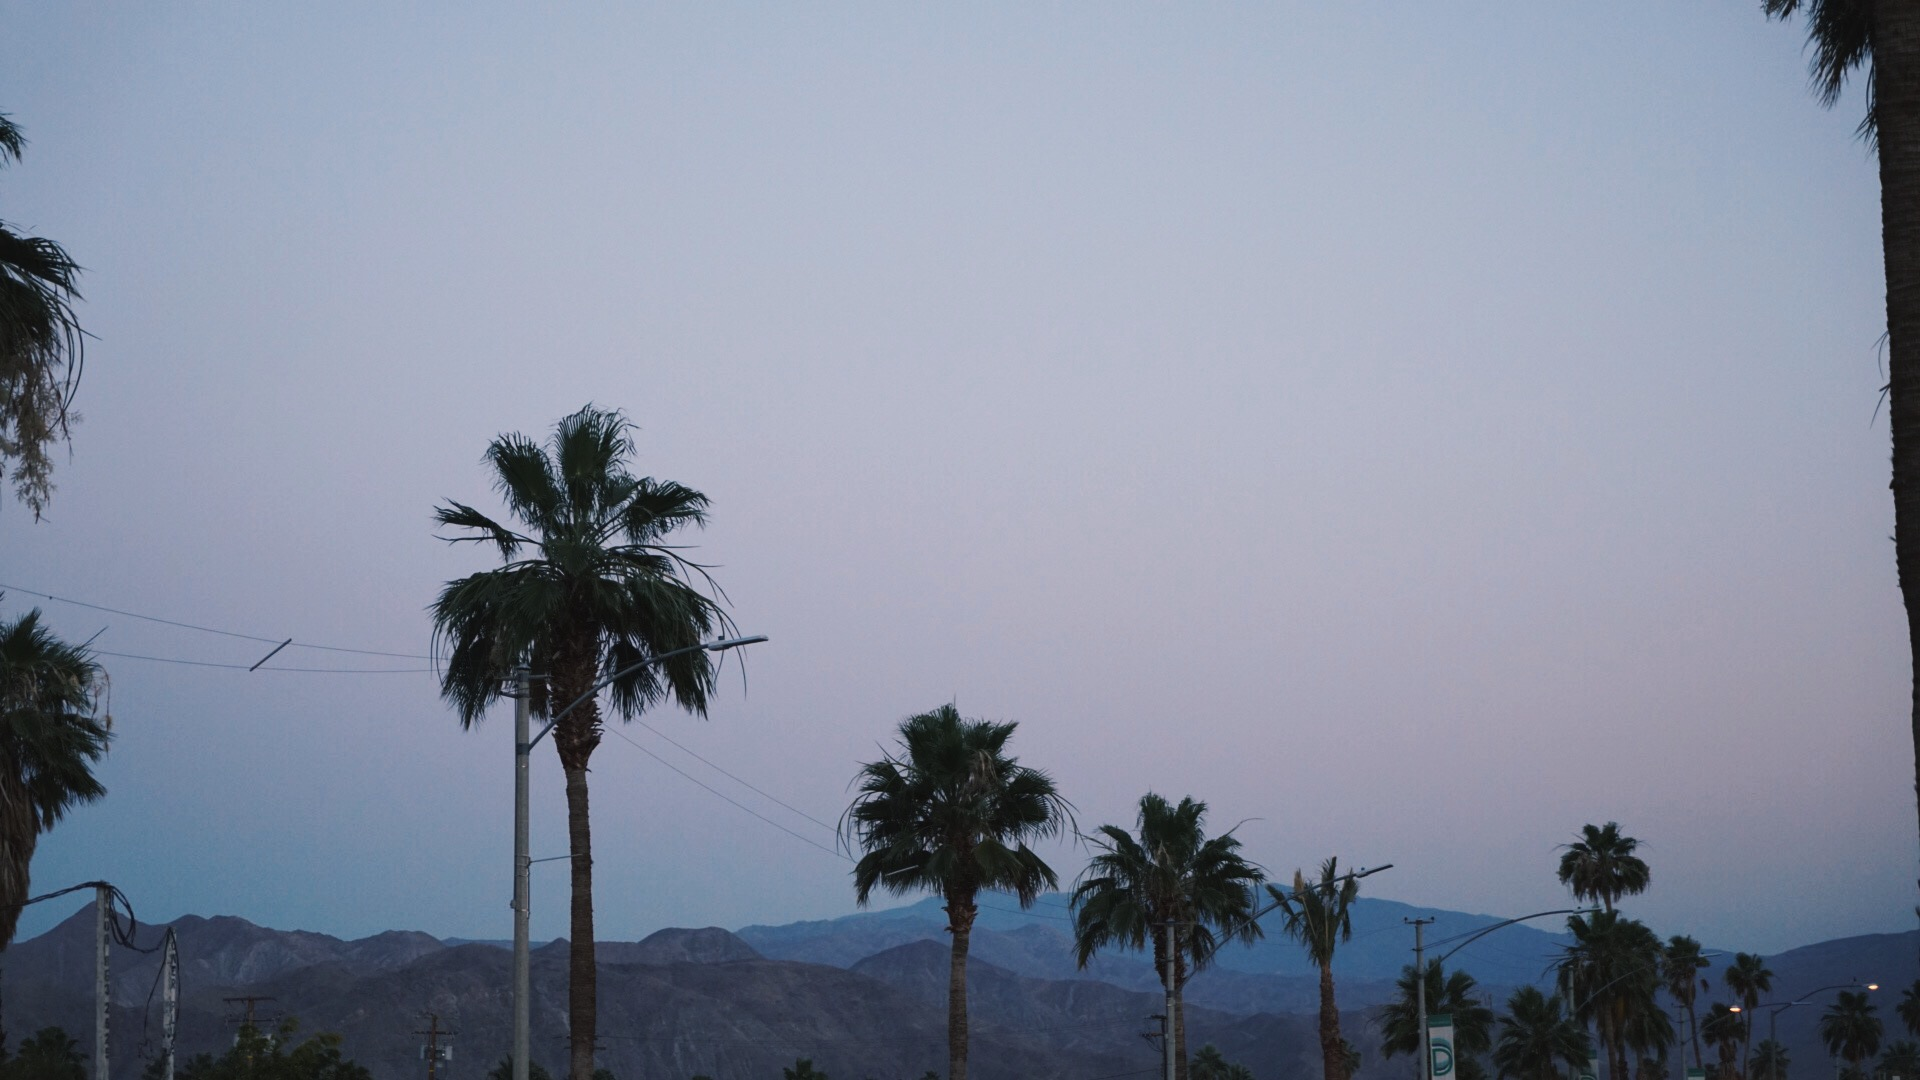 the desert sky at sunset is one of my favourite things.